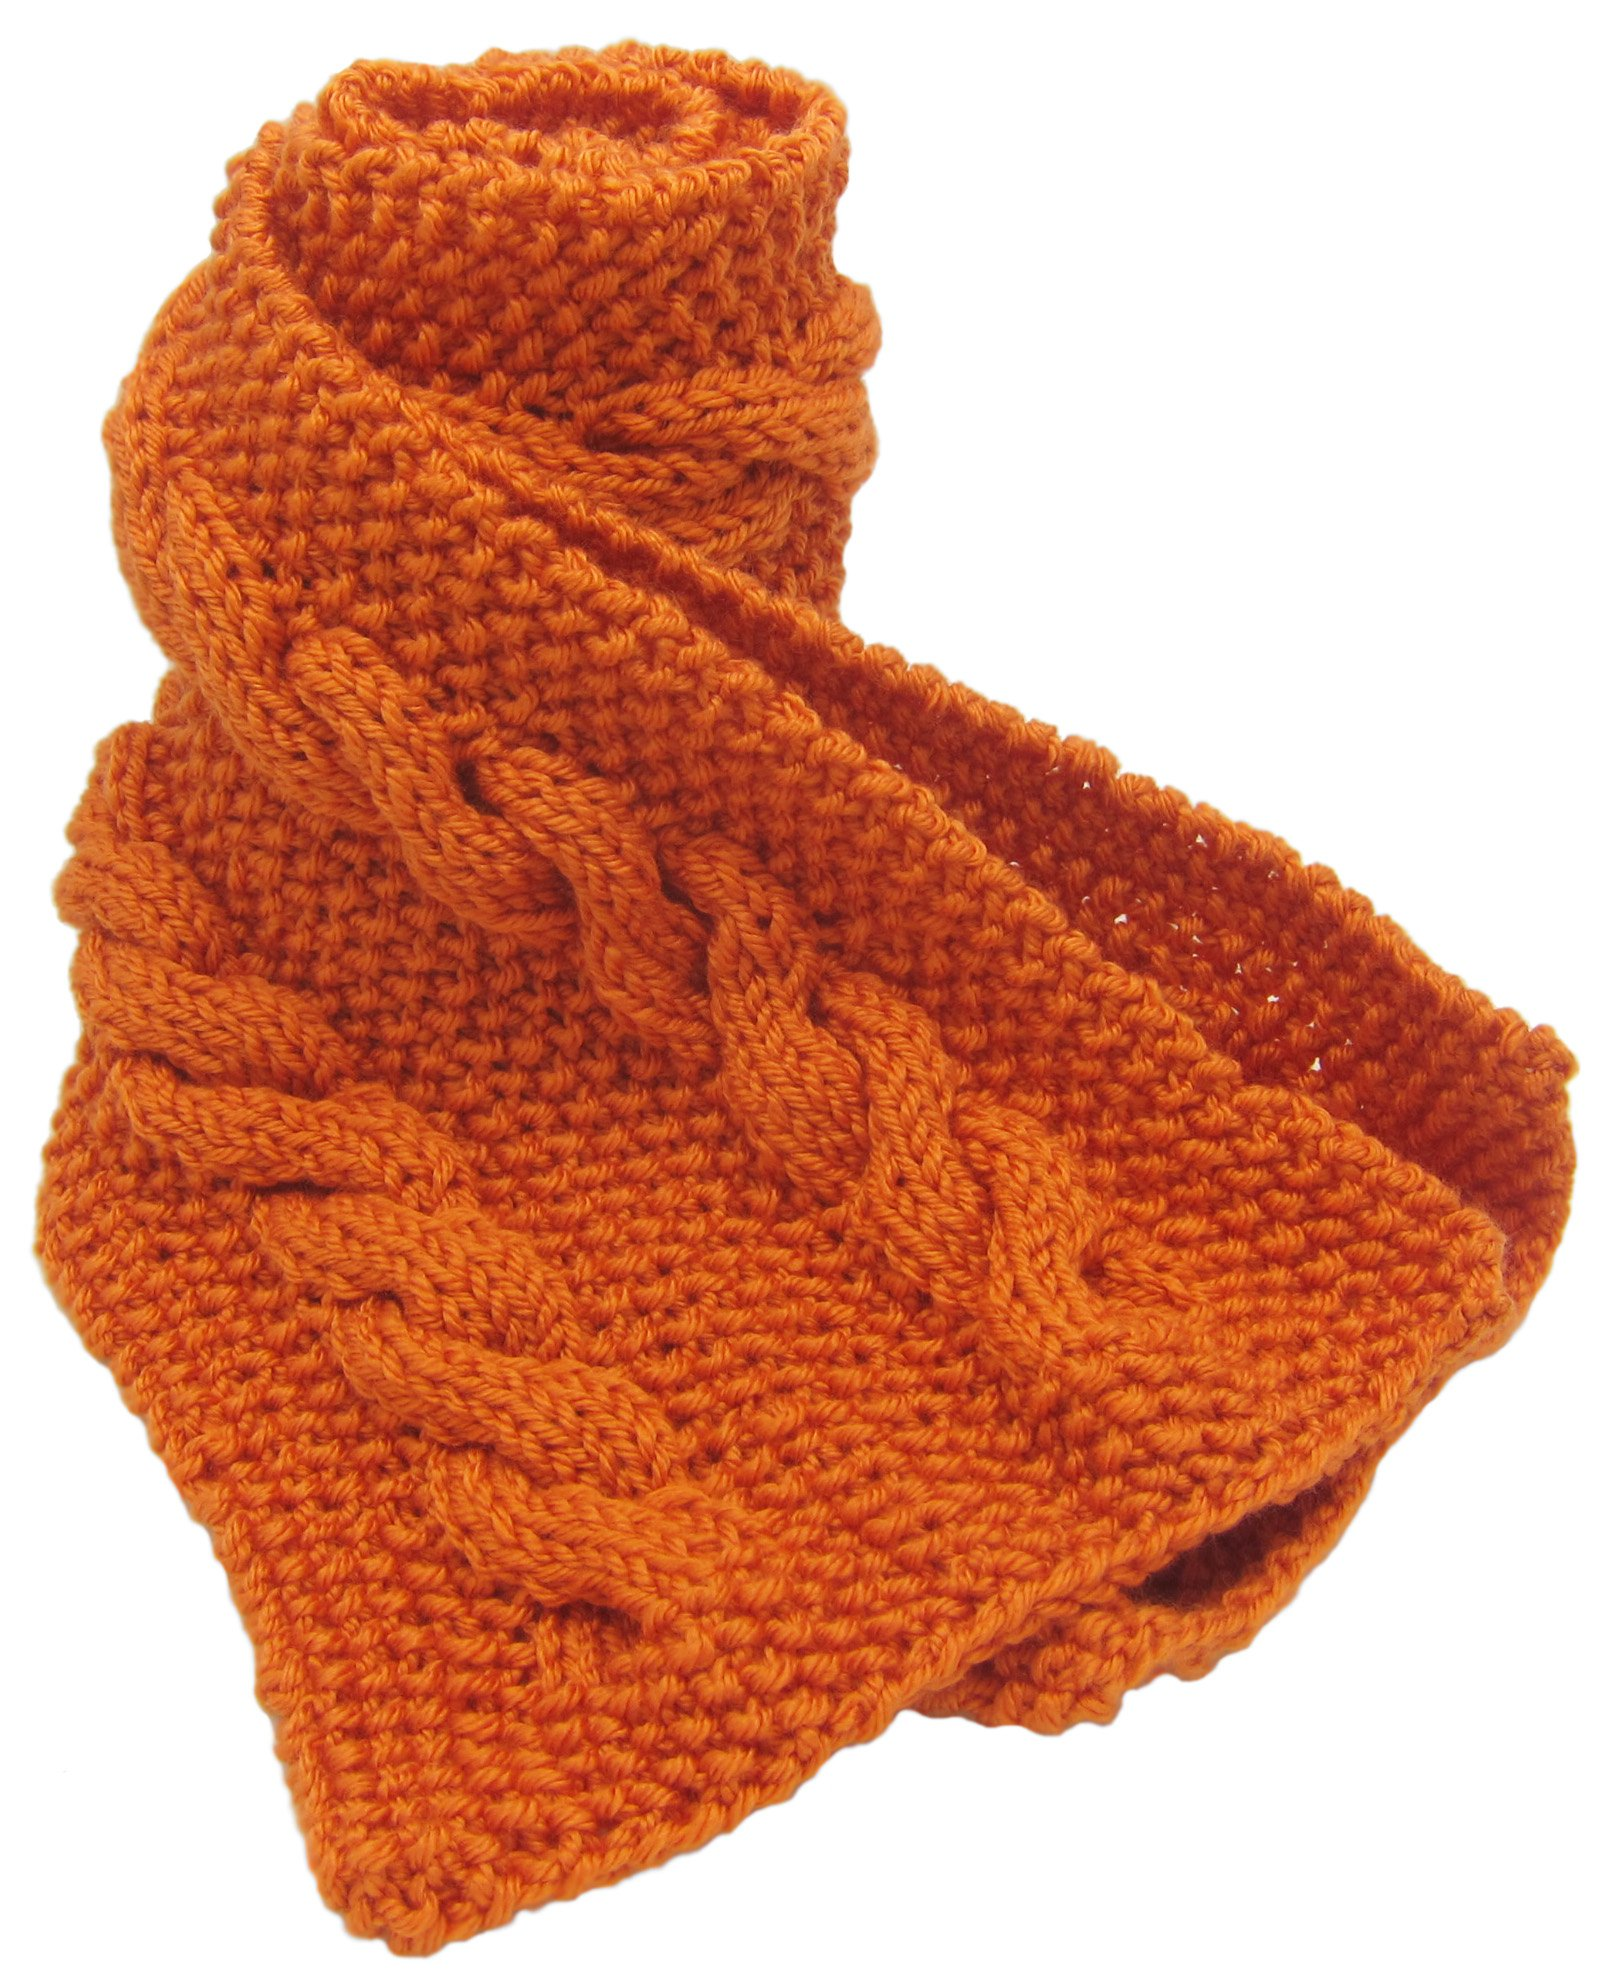 Knitted by Hand with Love - PURE ALPACA Cable Scarf - Fresh Orange (Made to Order)